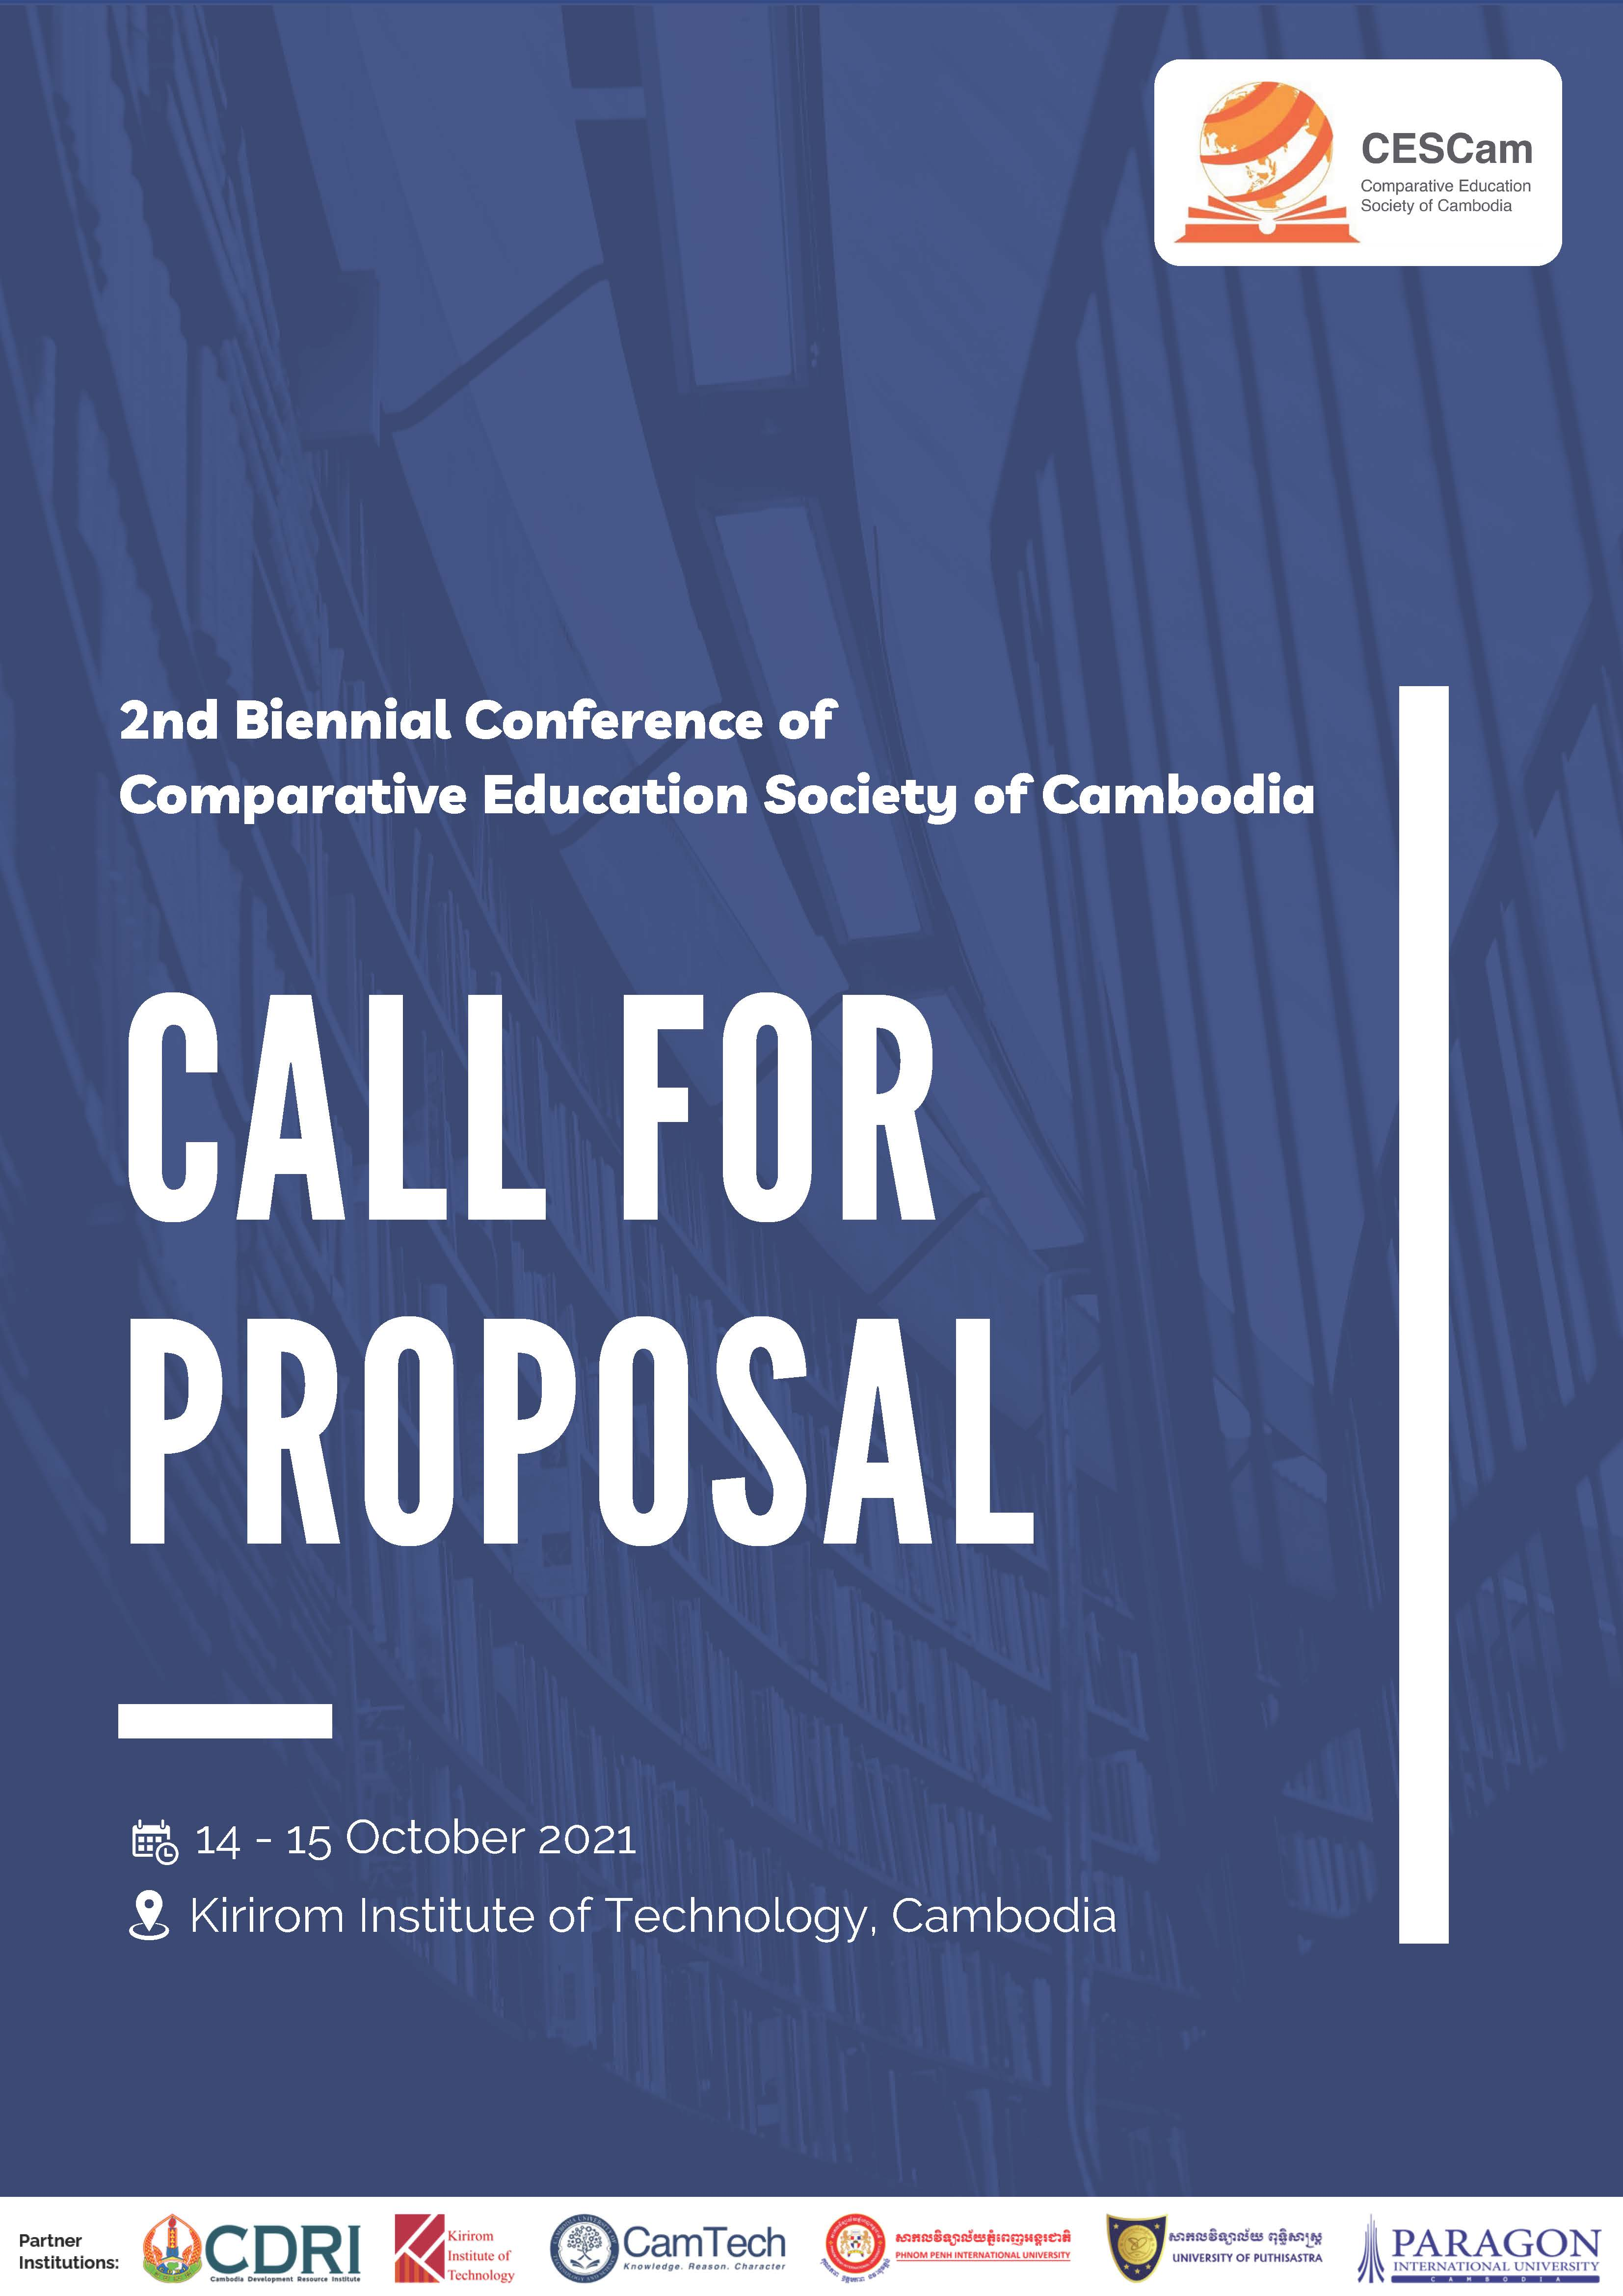 2nd Biennial Conference of Comparative Education Society of Cambodia